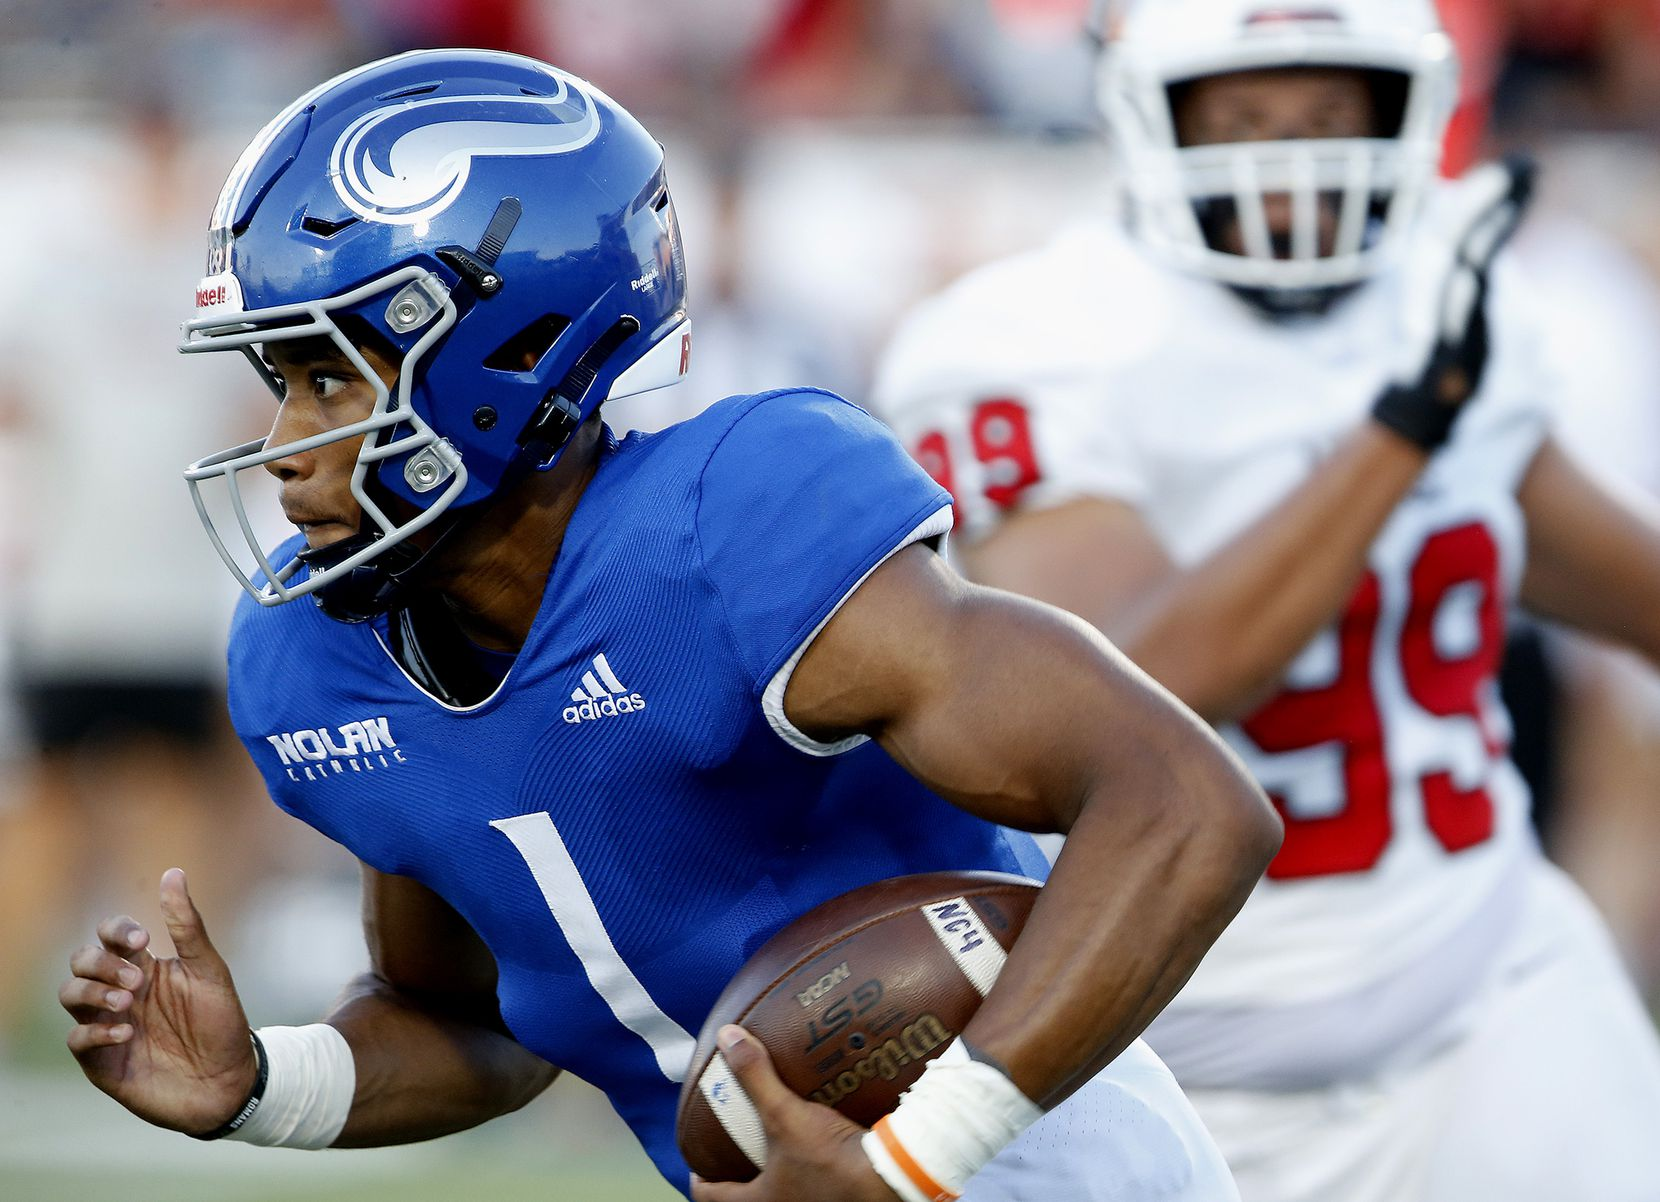 Nolan Catholic High School quarterback Tj Williams (1) carries the ball during the first half as Argyle High School hosted Nolan Catholic High School at Eagle Stadium in Allen on Saturday evening, August 28, 2021. (Stewart F. House/Special Contributor)